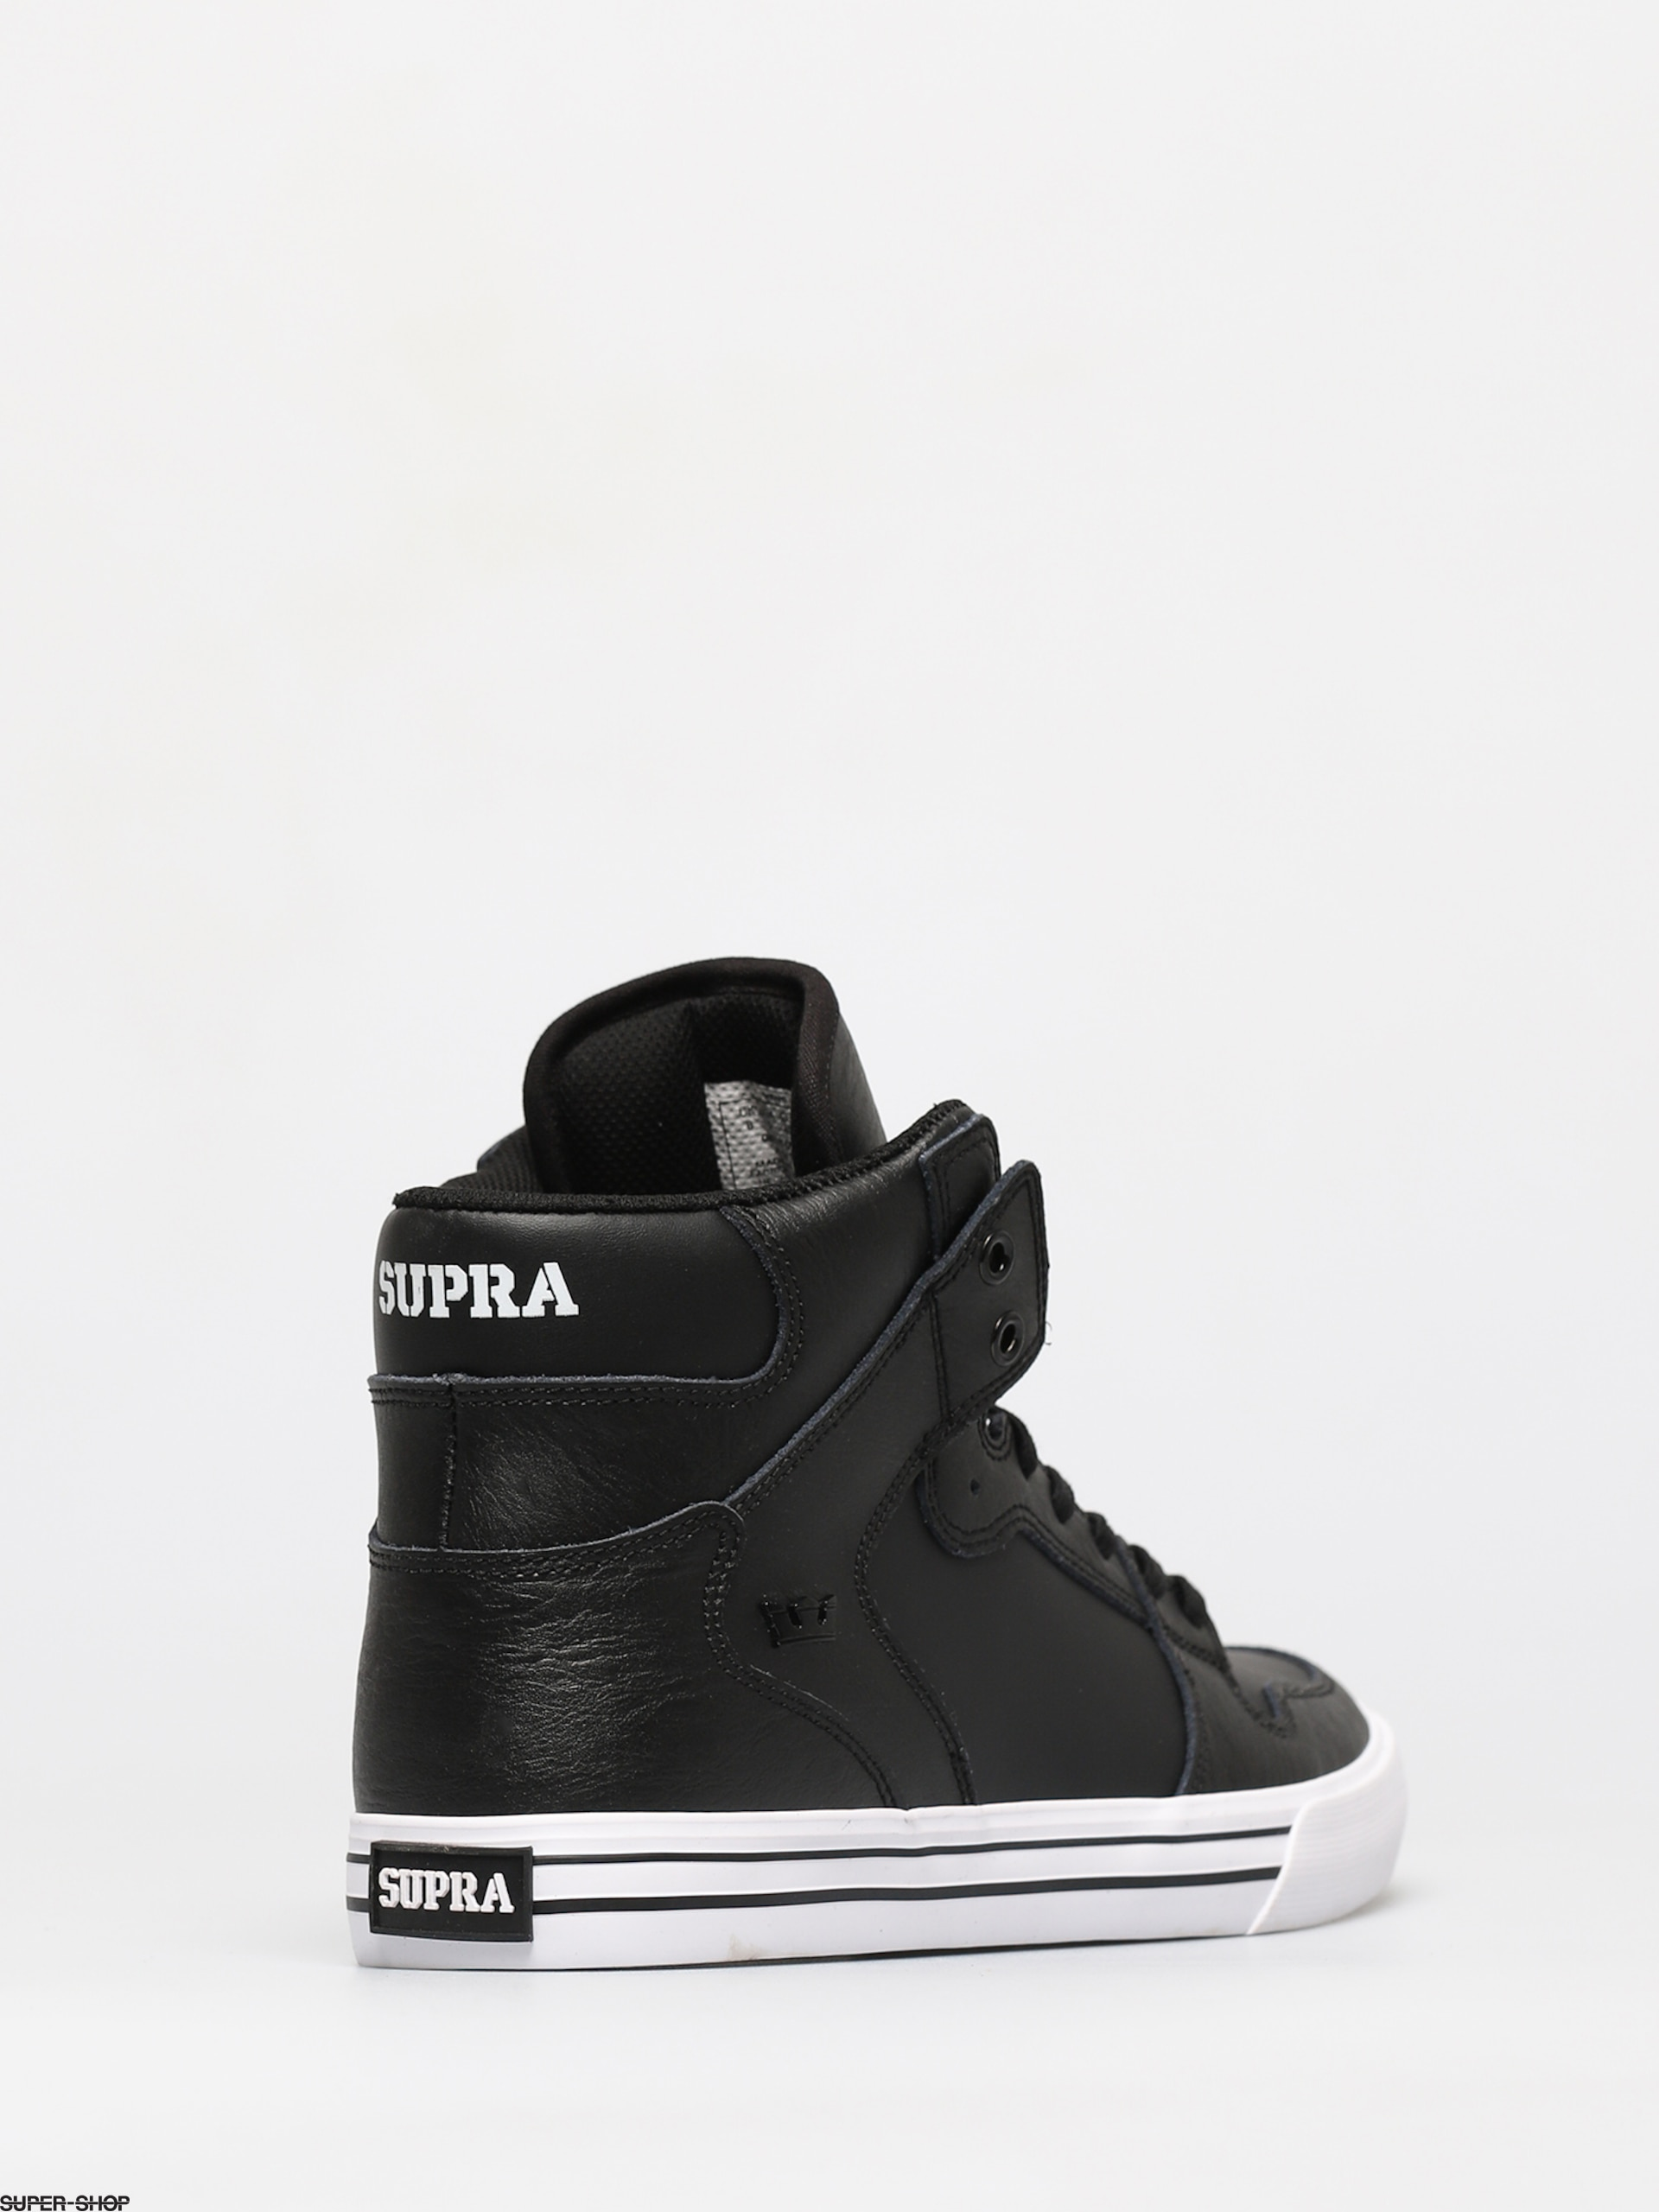 supgra shoes